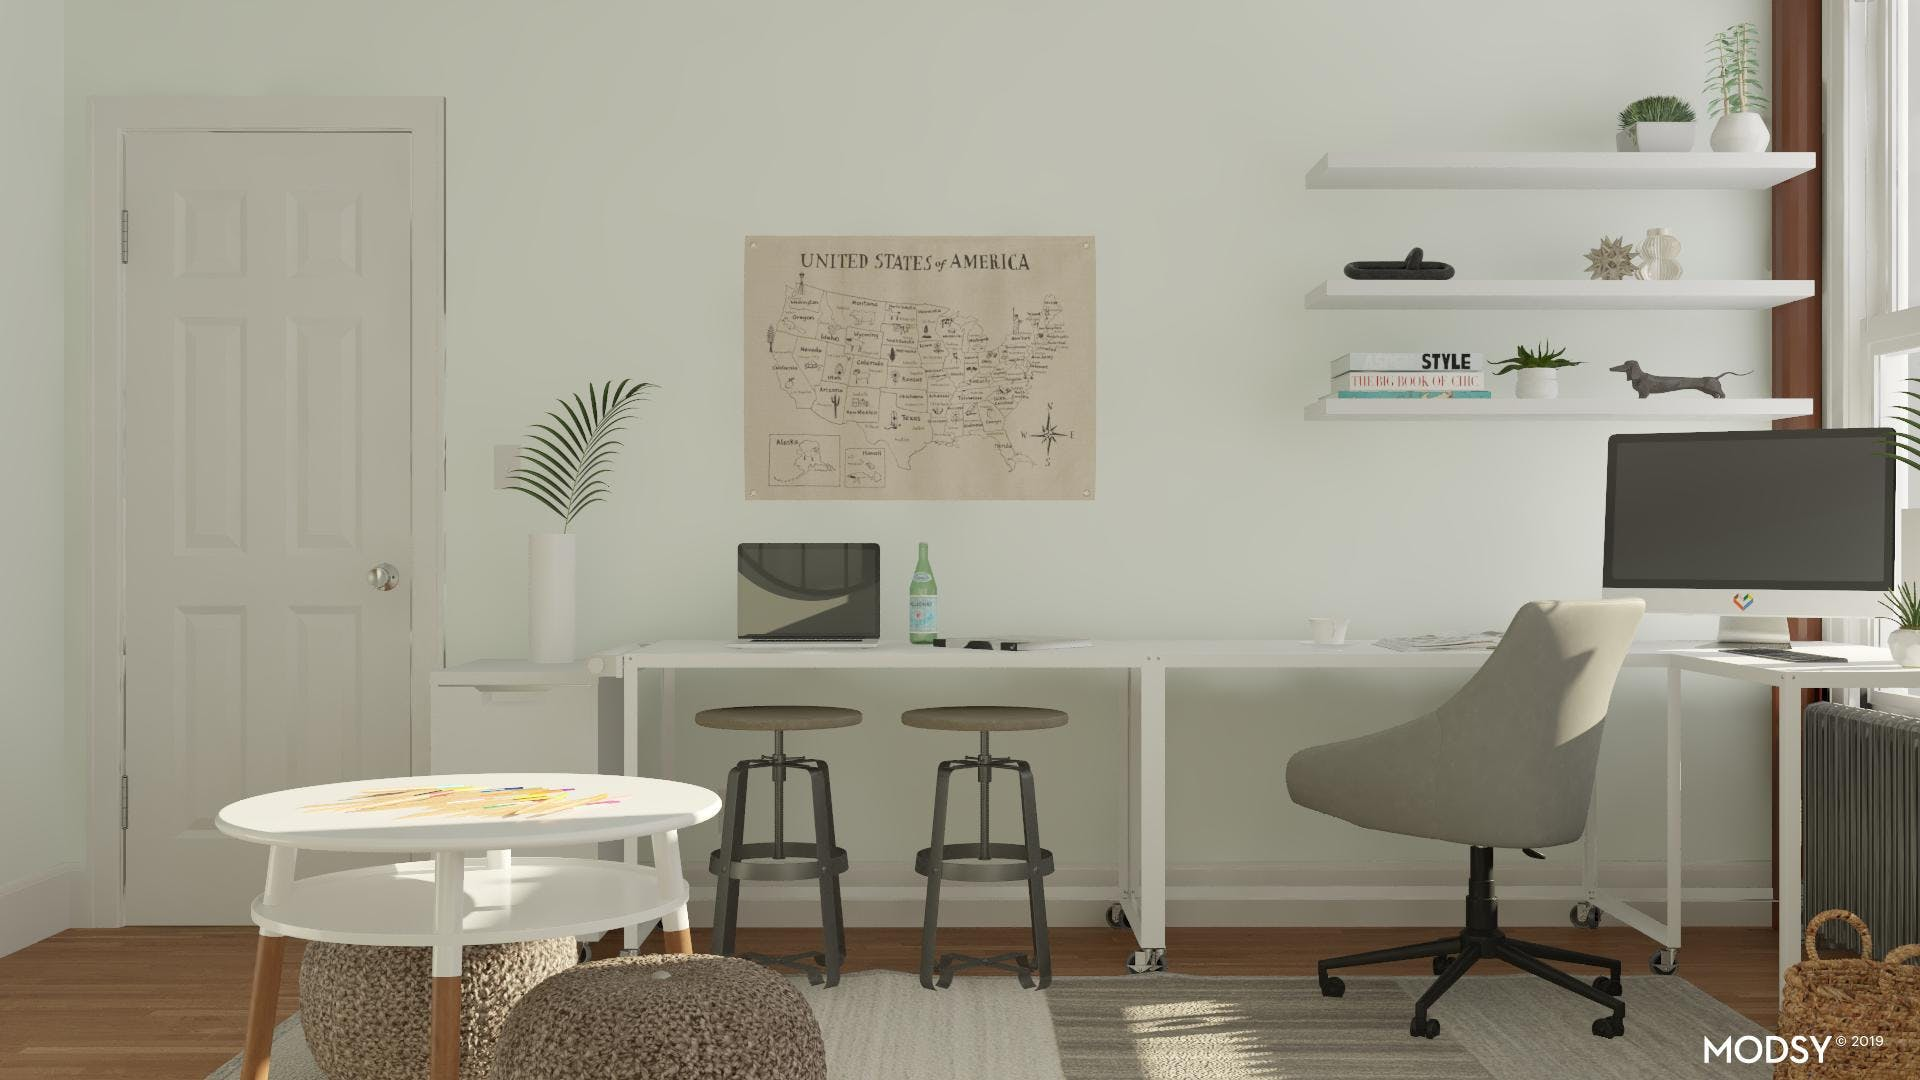 A Family Centered Home Office